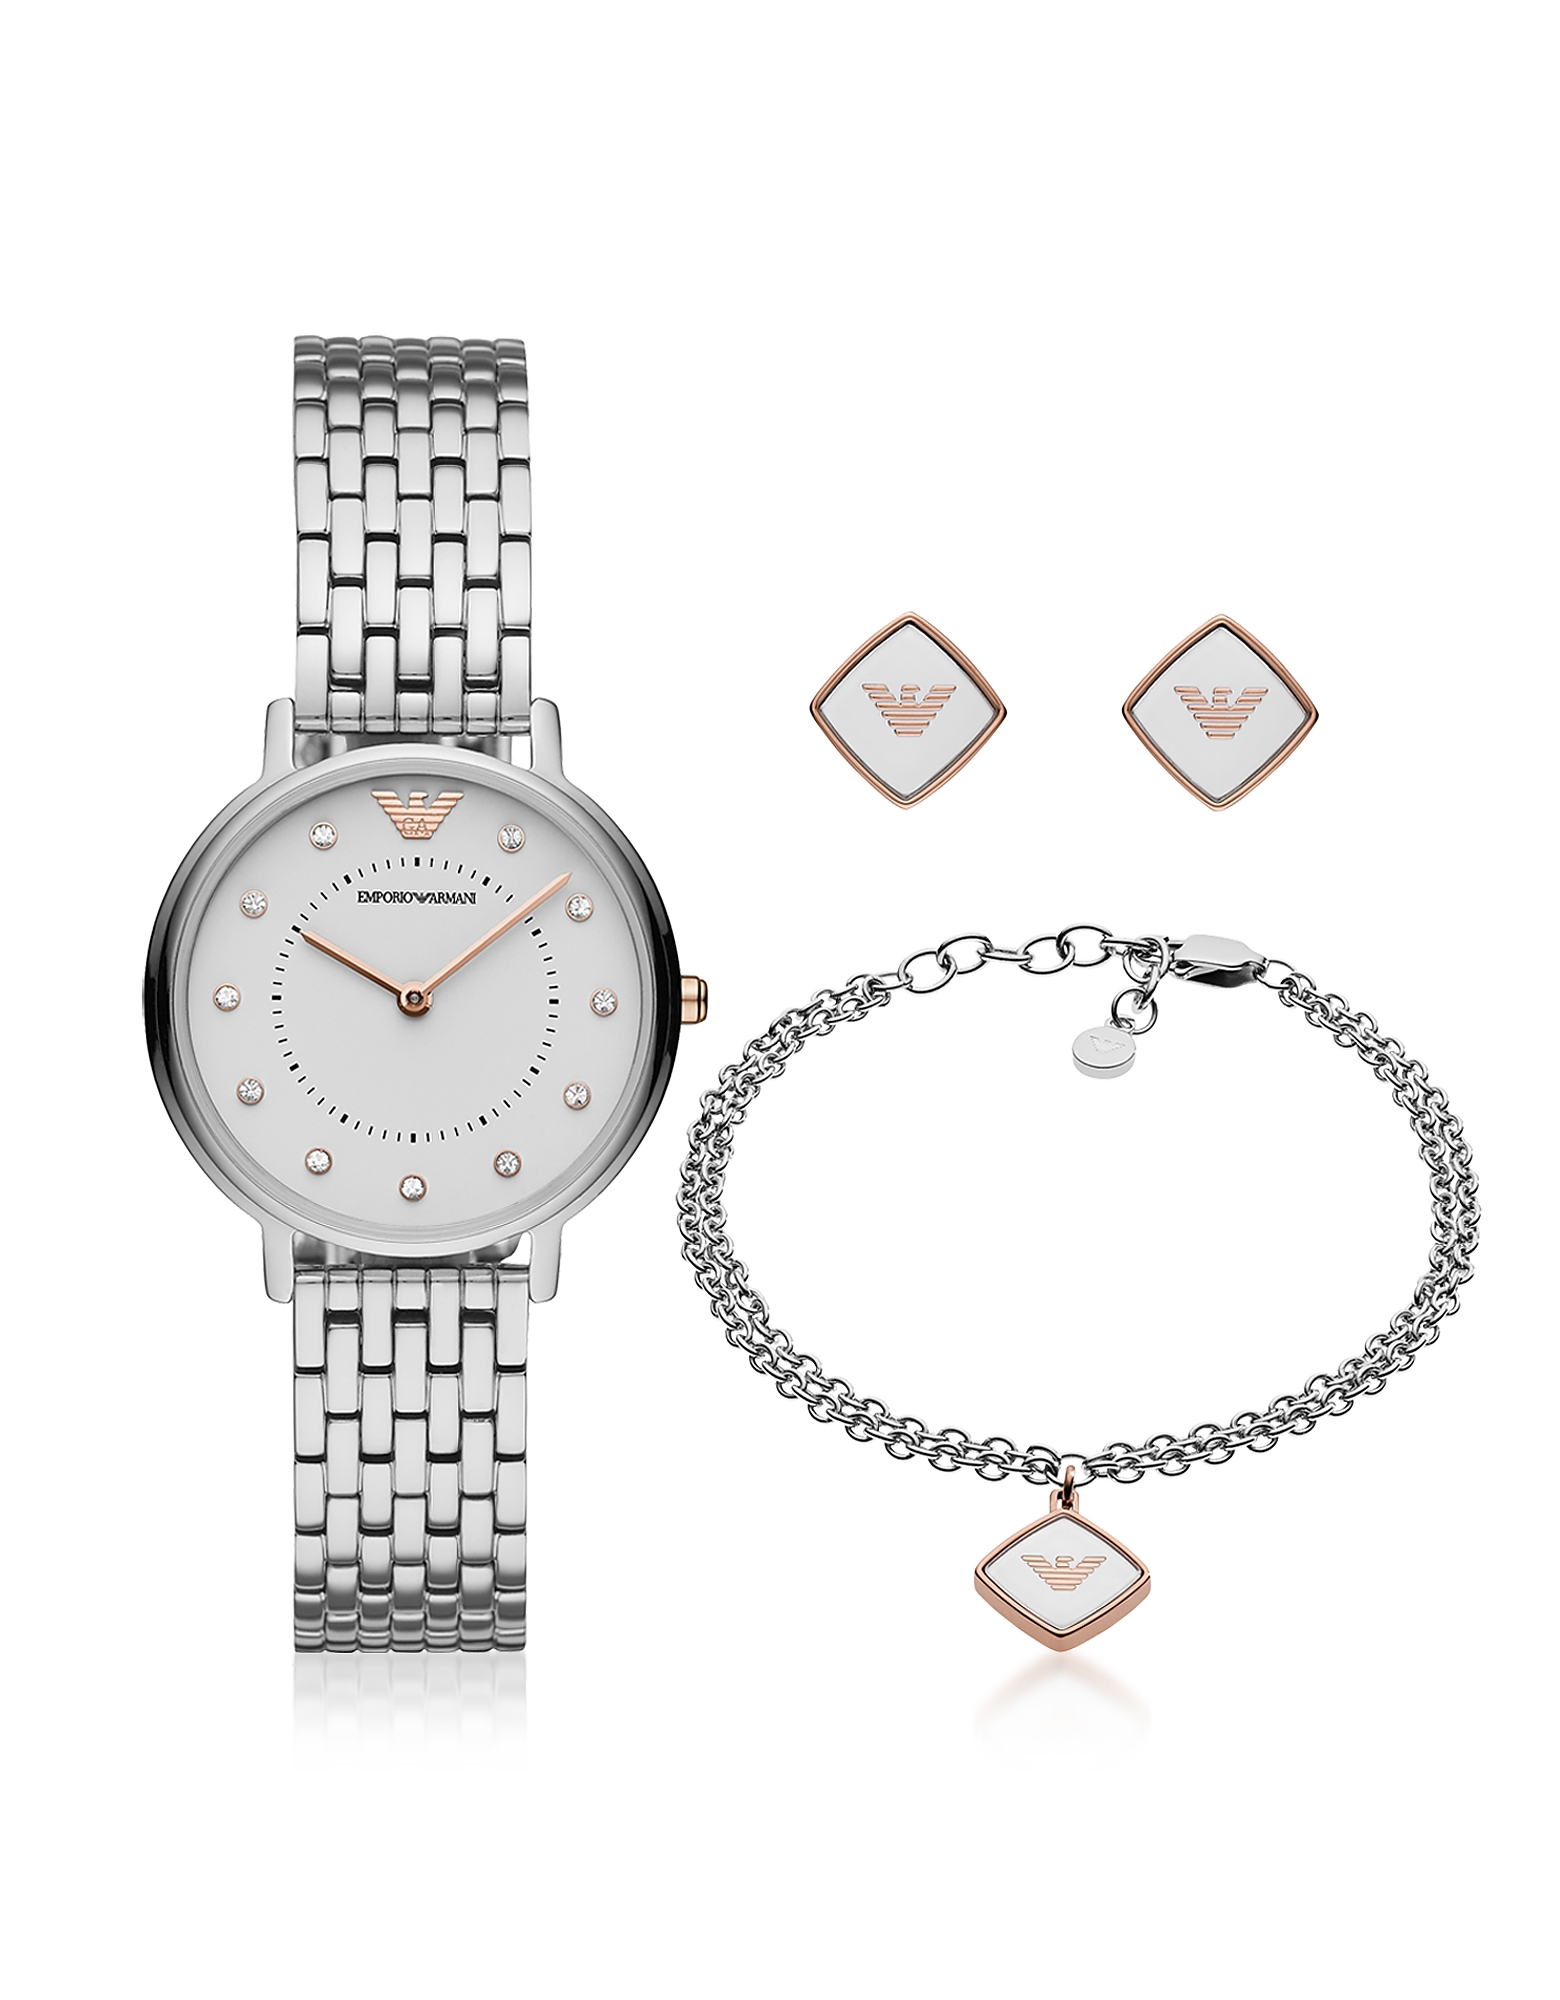 Kappa Stainless Steel Watch Set